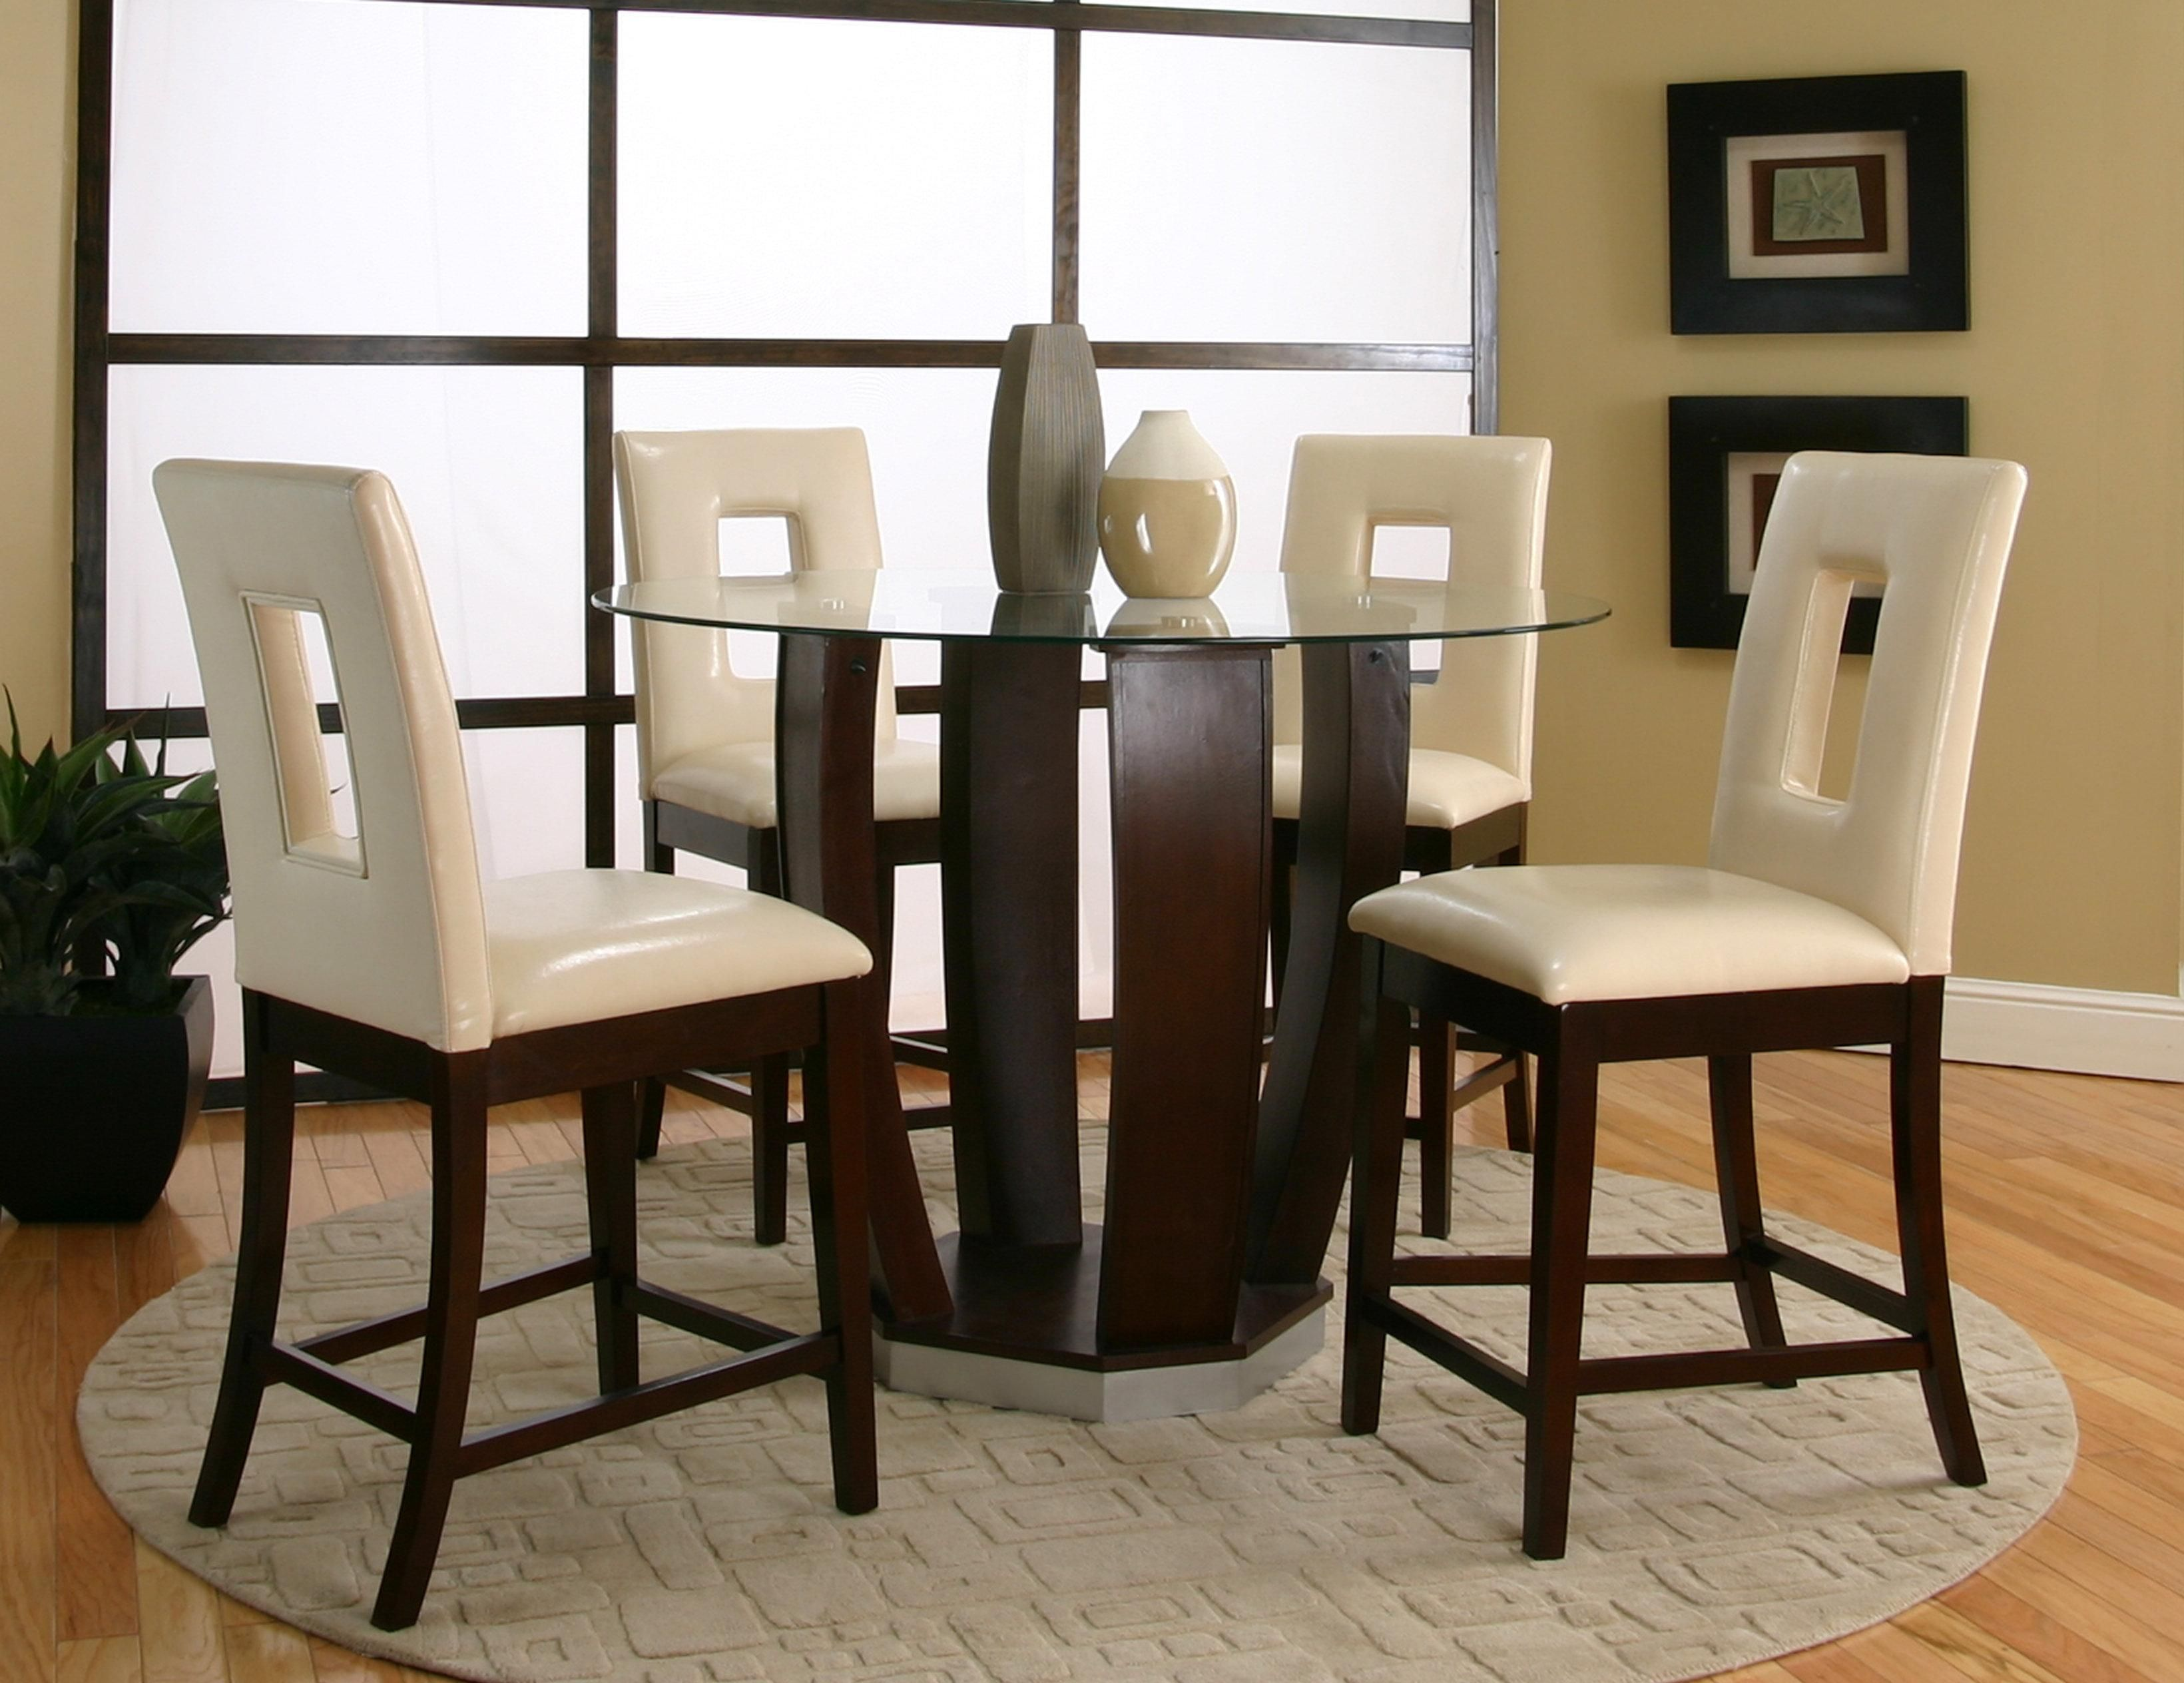 Beau Glass Top Bar Table And Chairs